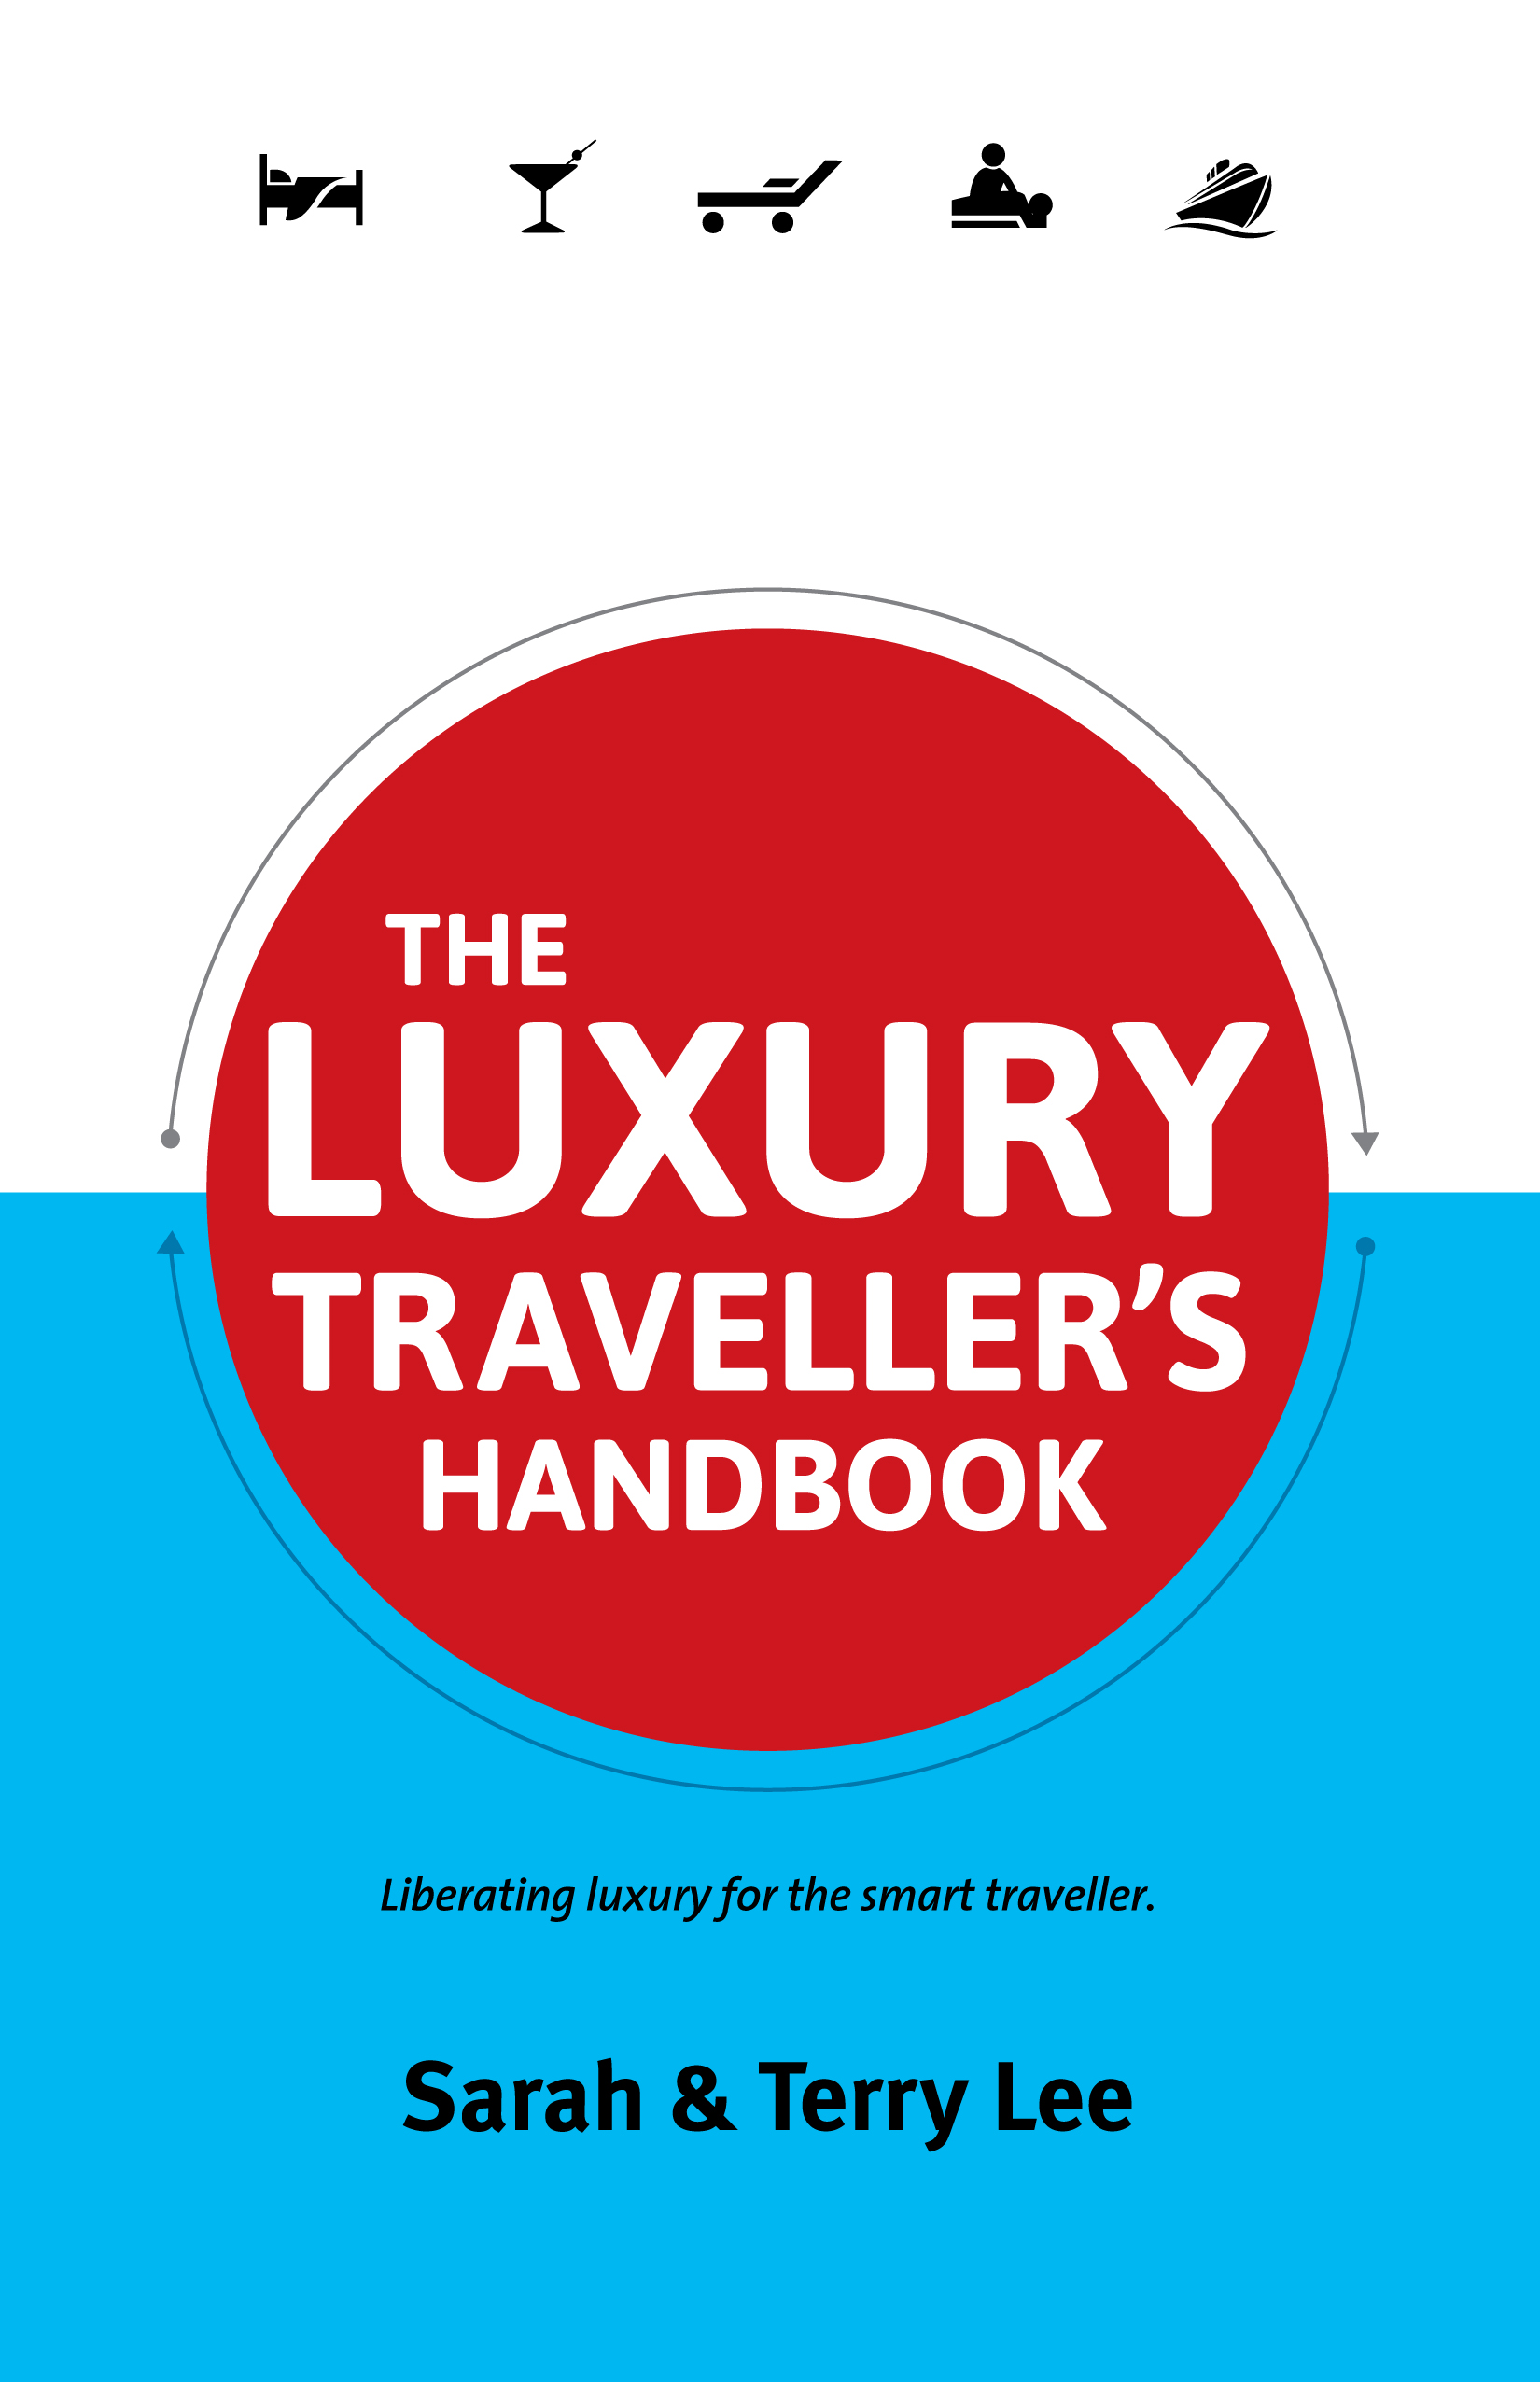 The Luxury Traveller's Handbook: Liberating Luxury For The Smart Traveller